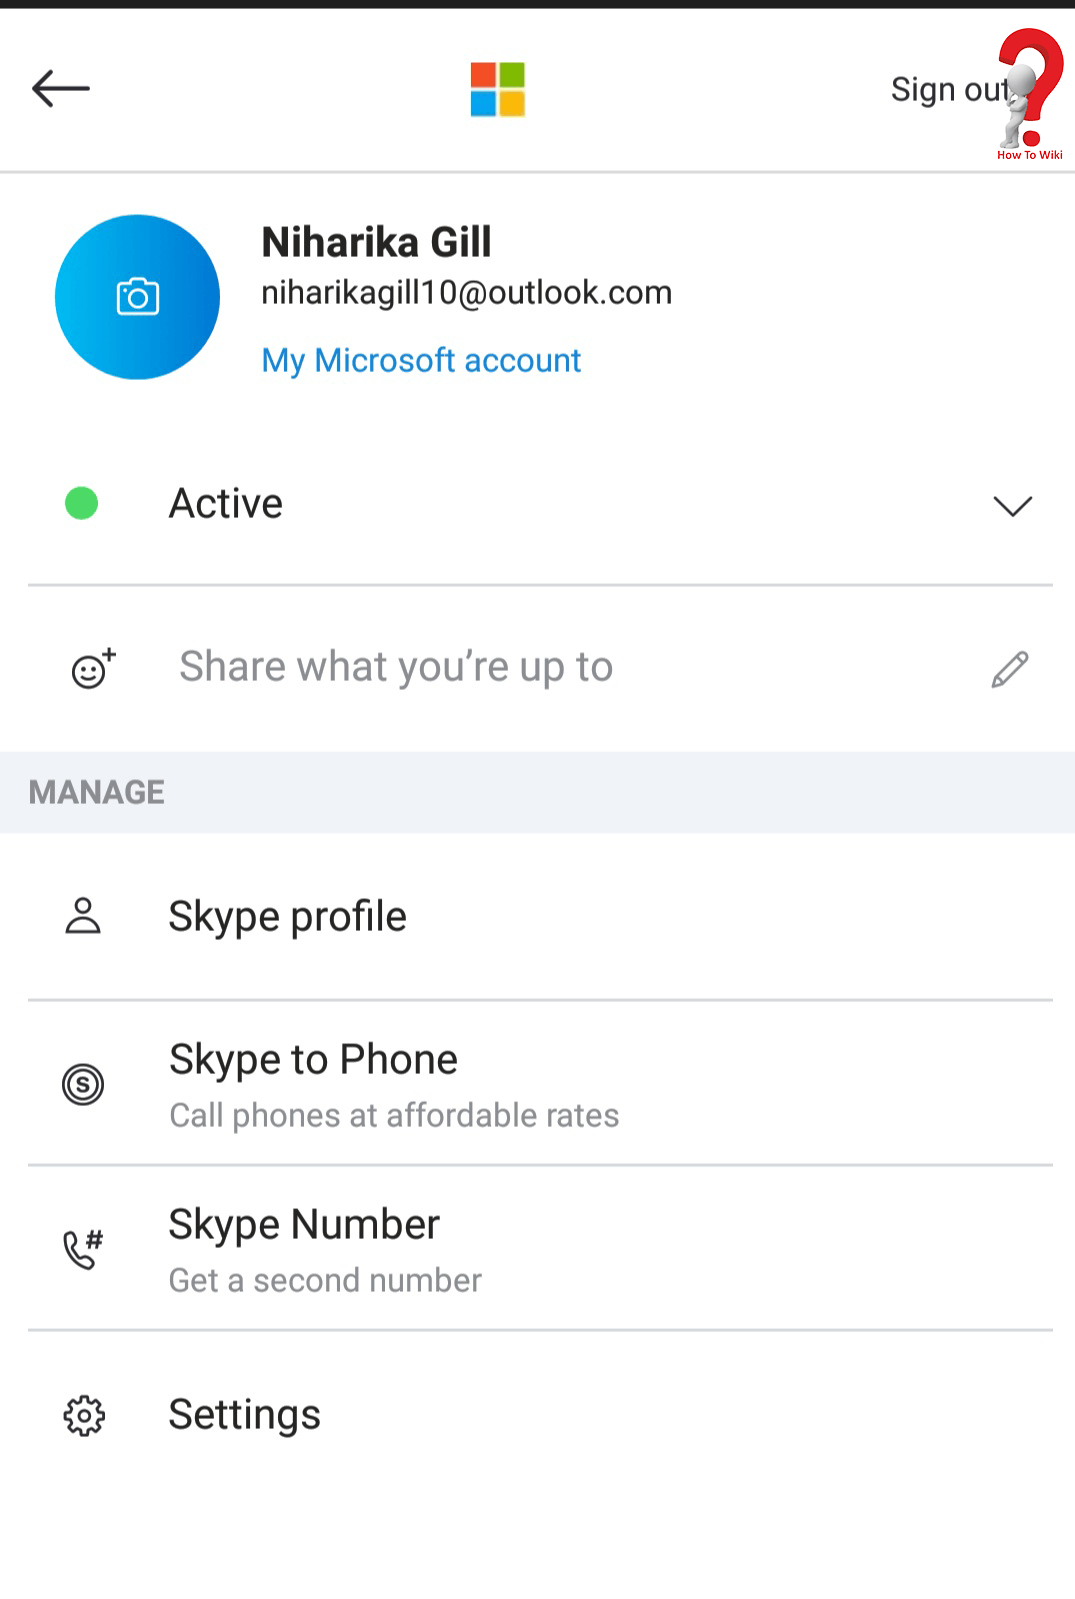 Skype My Account